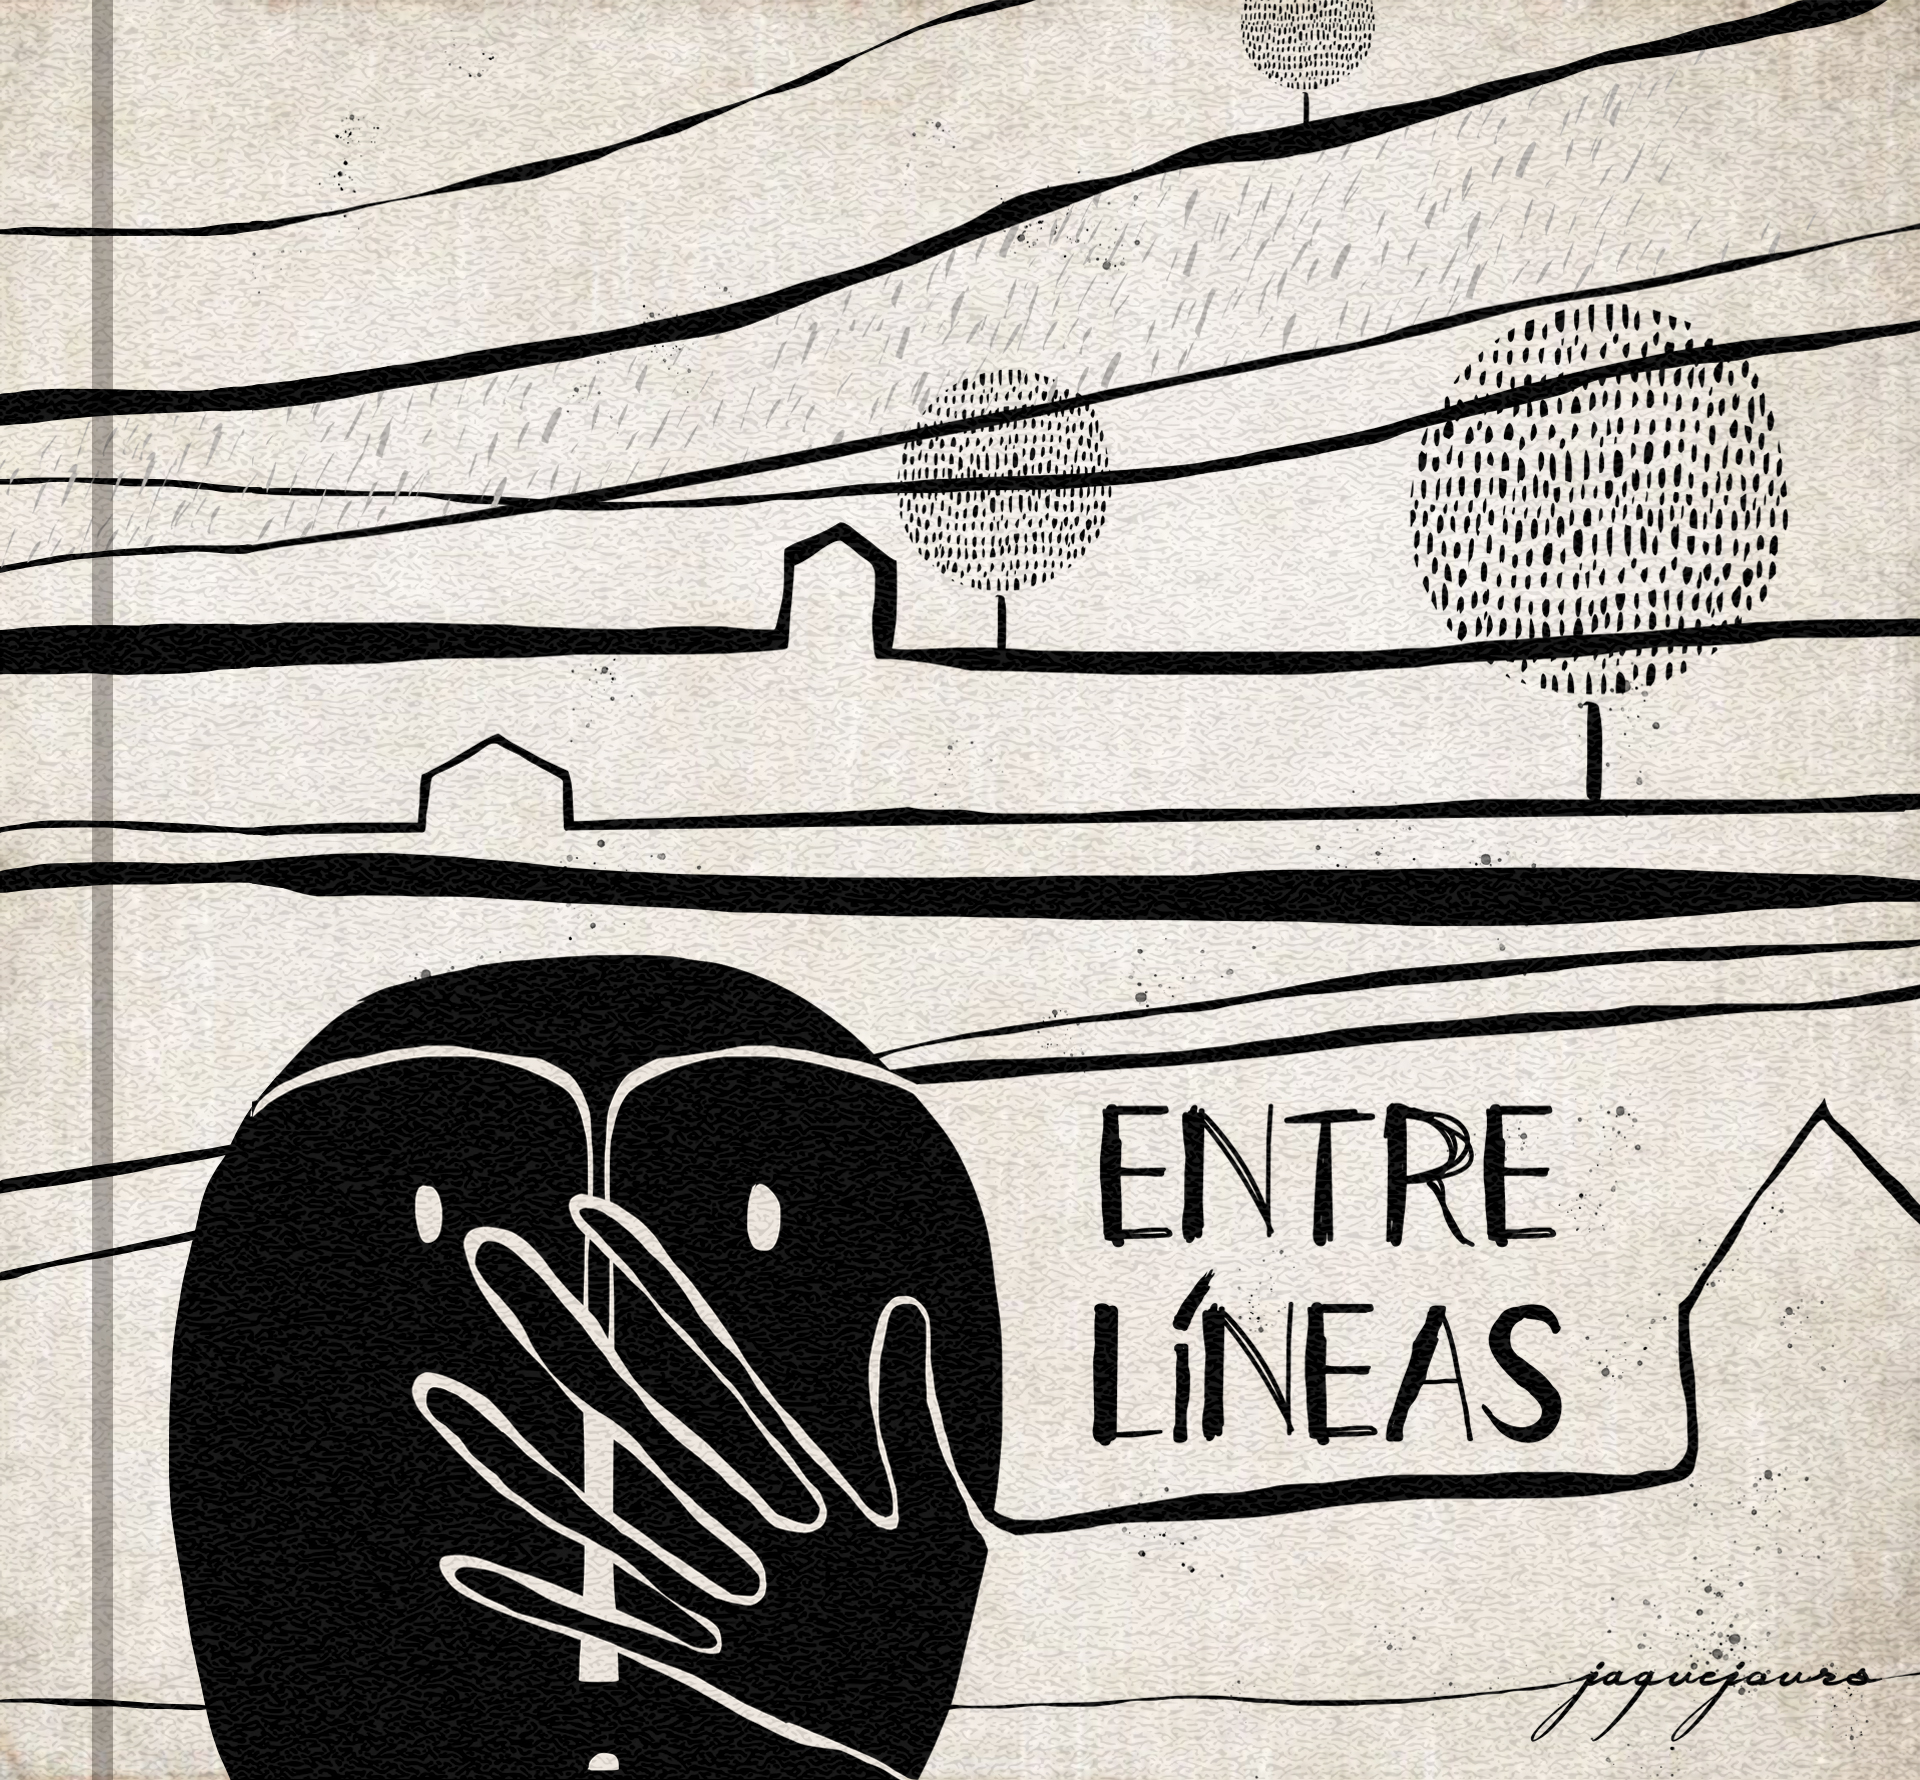 """Entre líneas"" written by Jaque Jours"